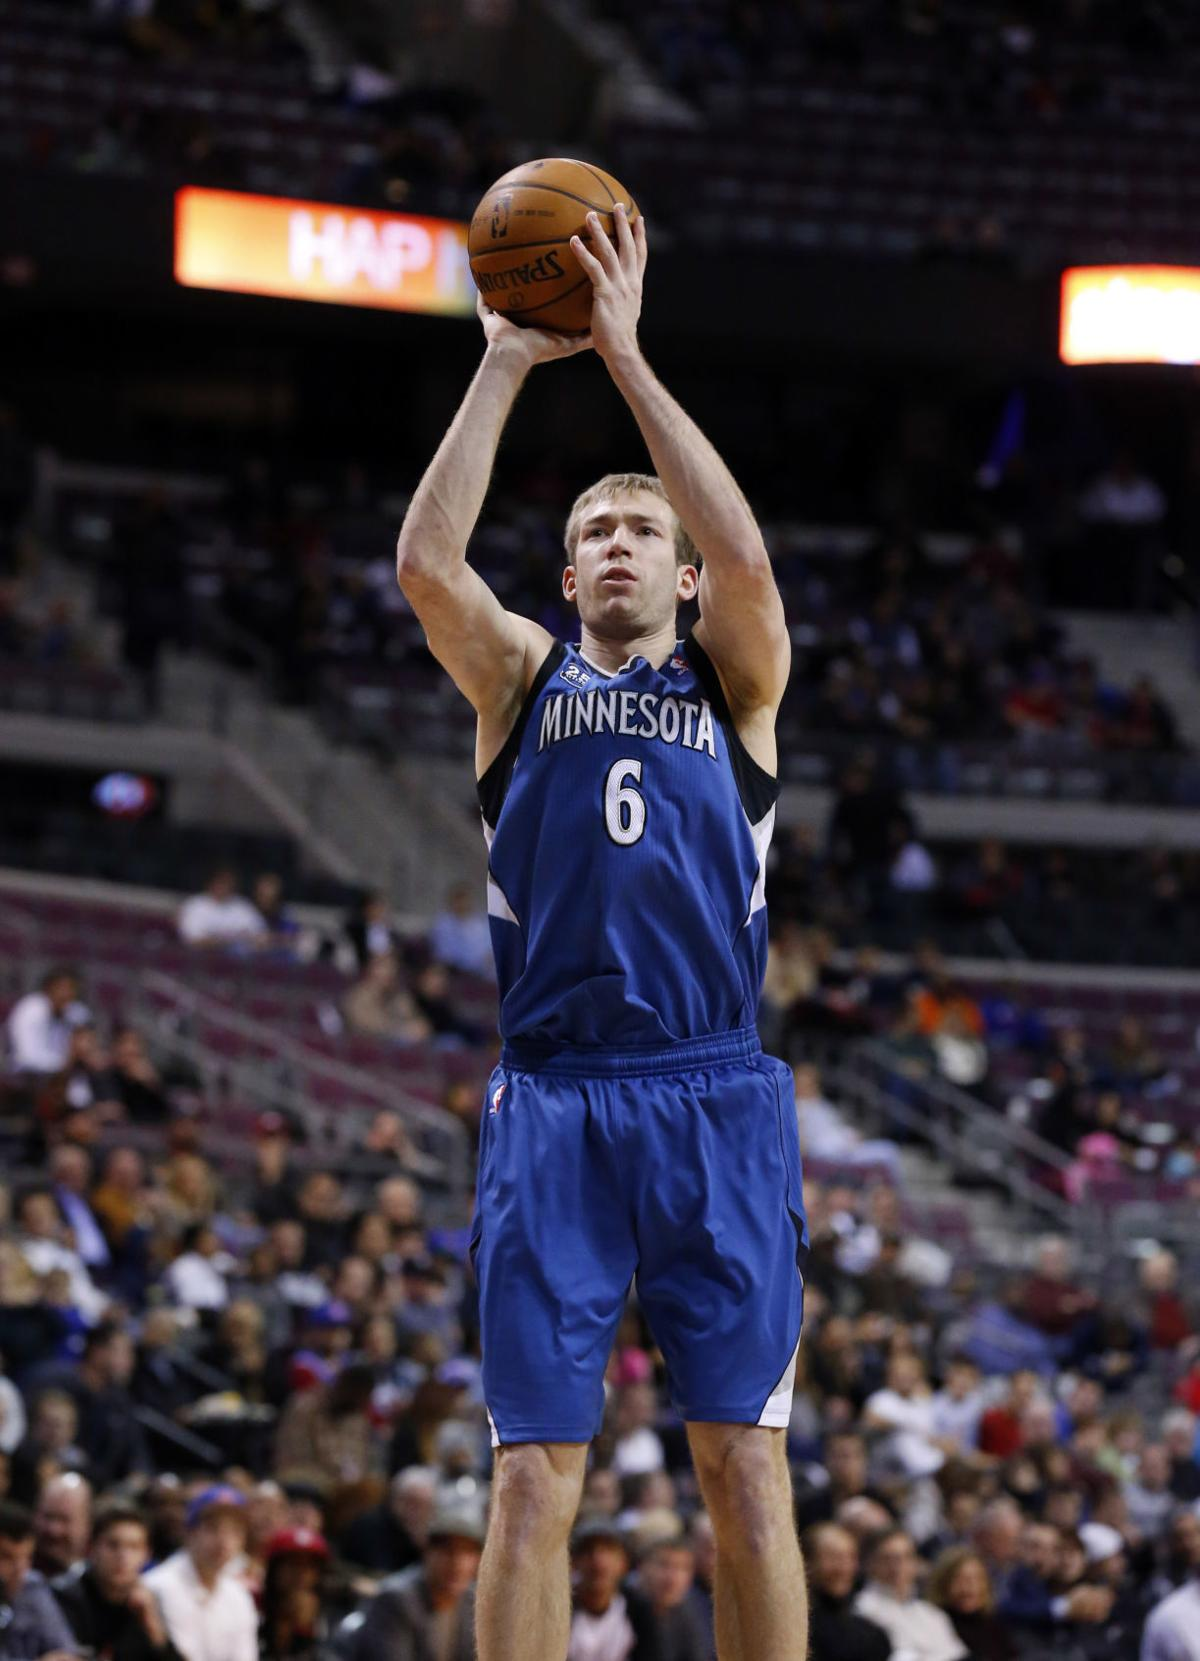 Robbie Hummel Named 2019 Usa Basketball Male Athlete Of The Year National Basketball Association Nwitimes Com